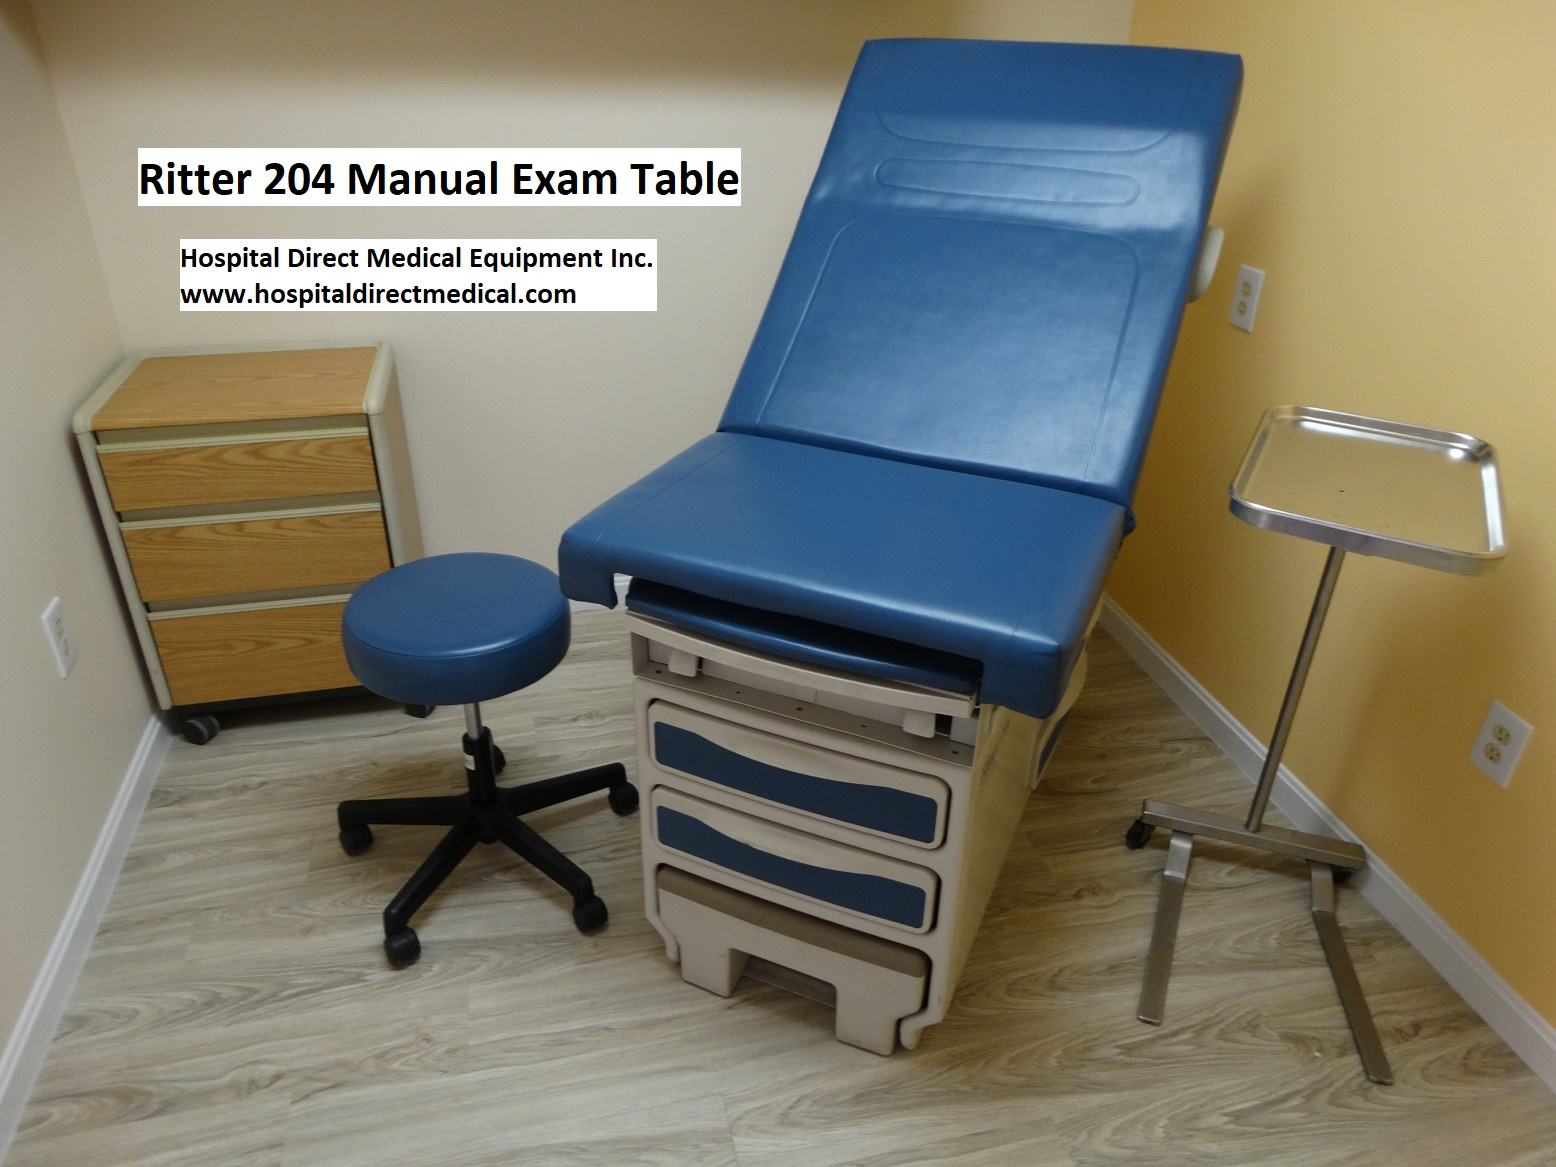 midmark 623 power exam table popular for doctor exam rooms used rh 1usedmedicalequipment com